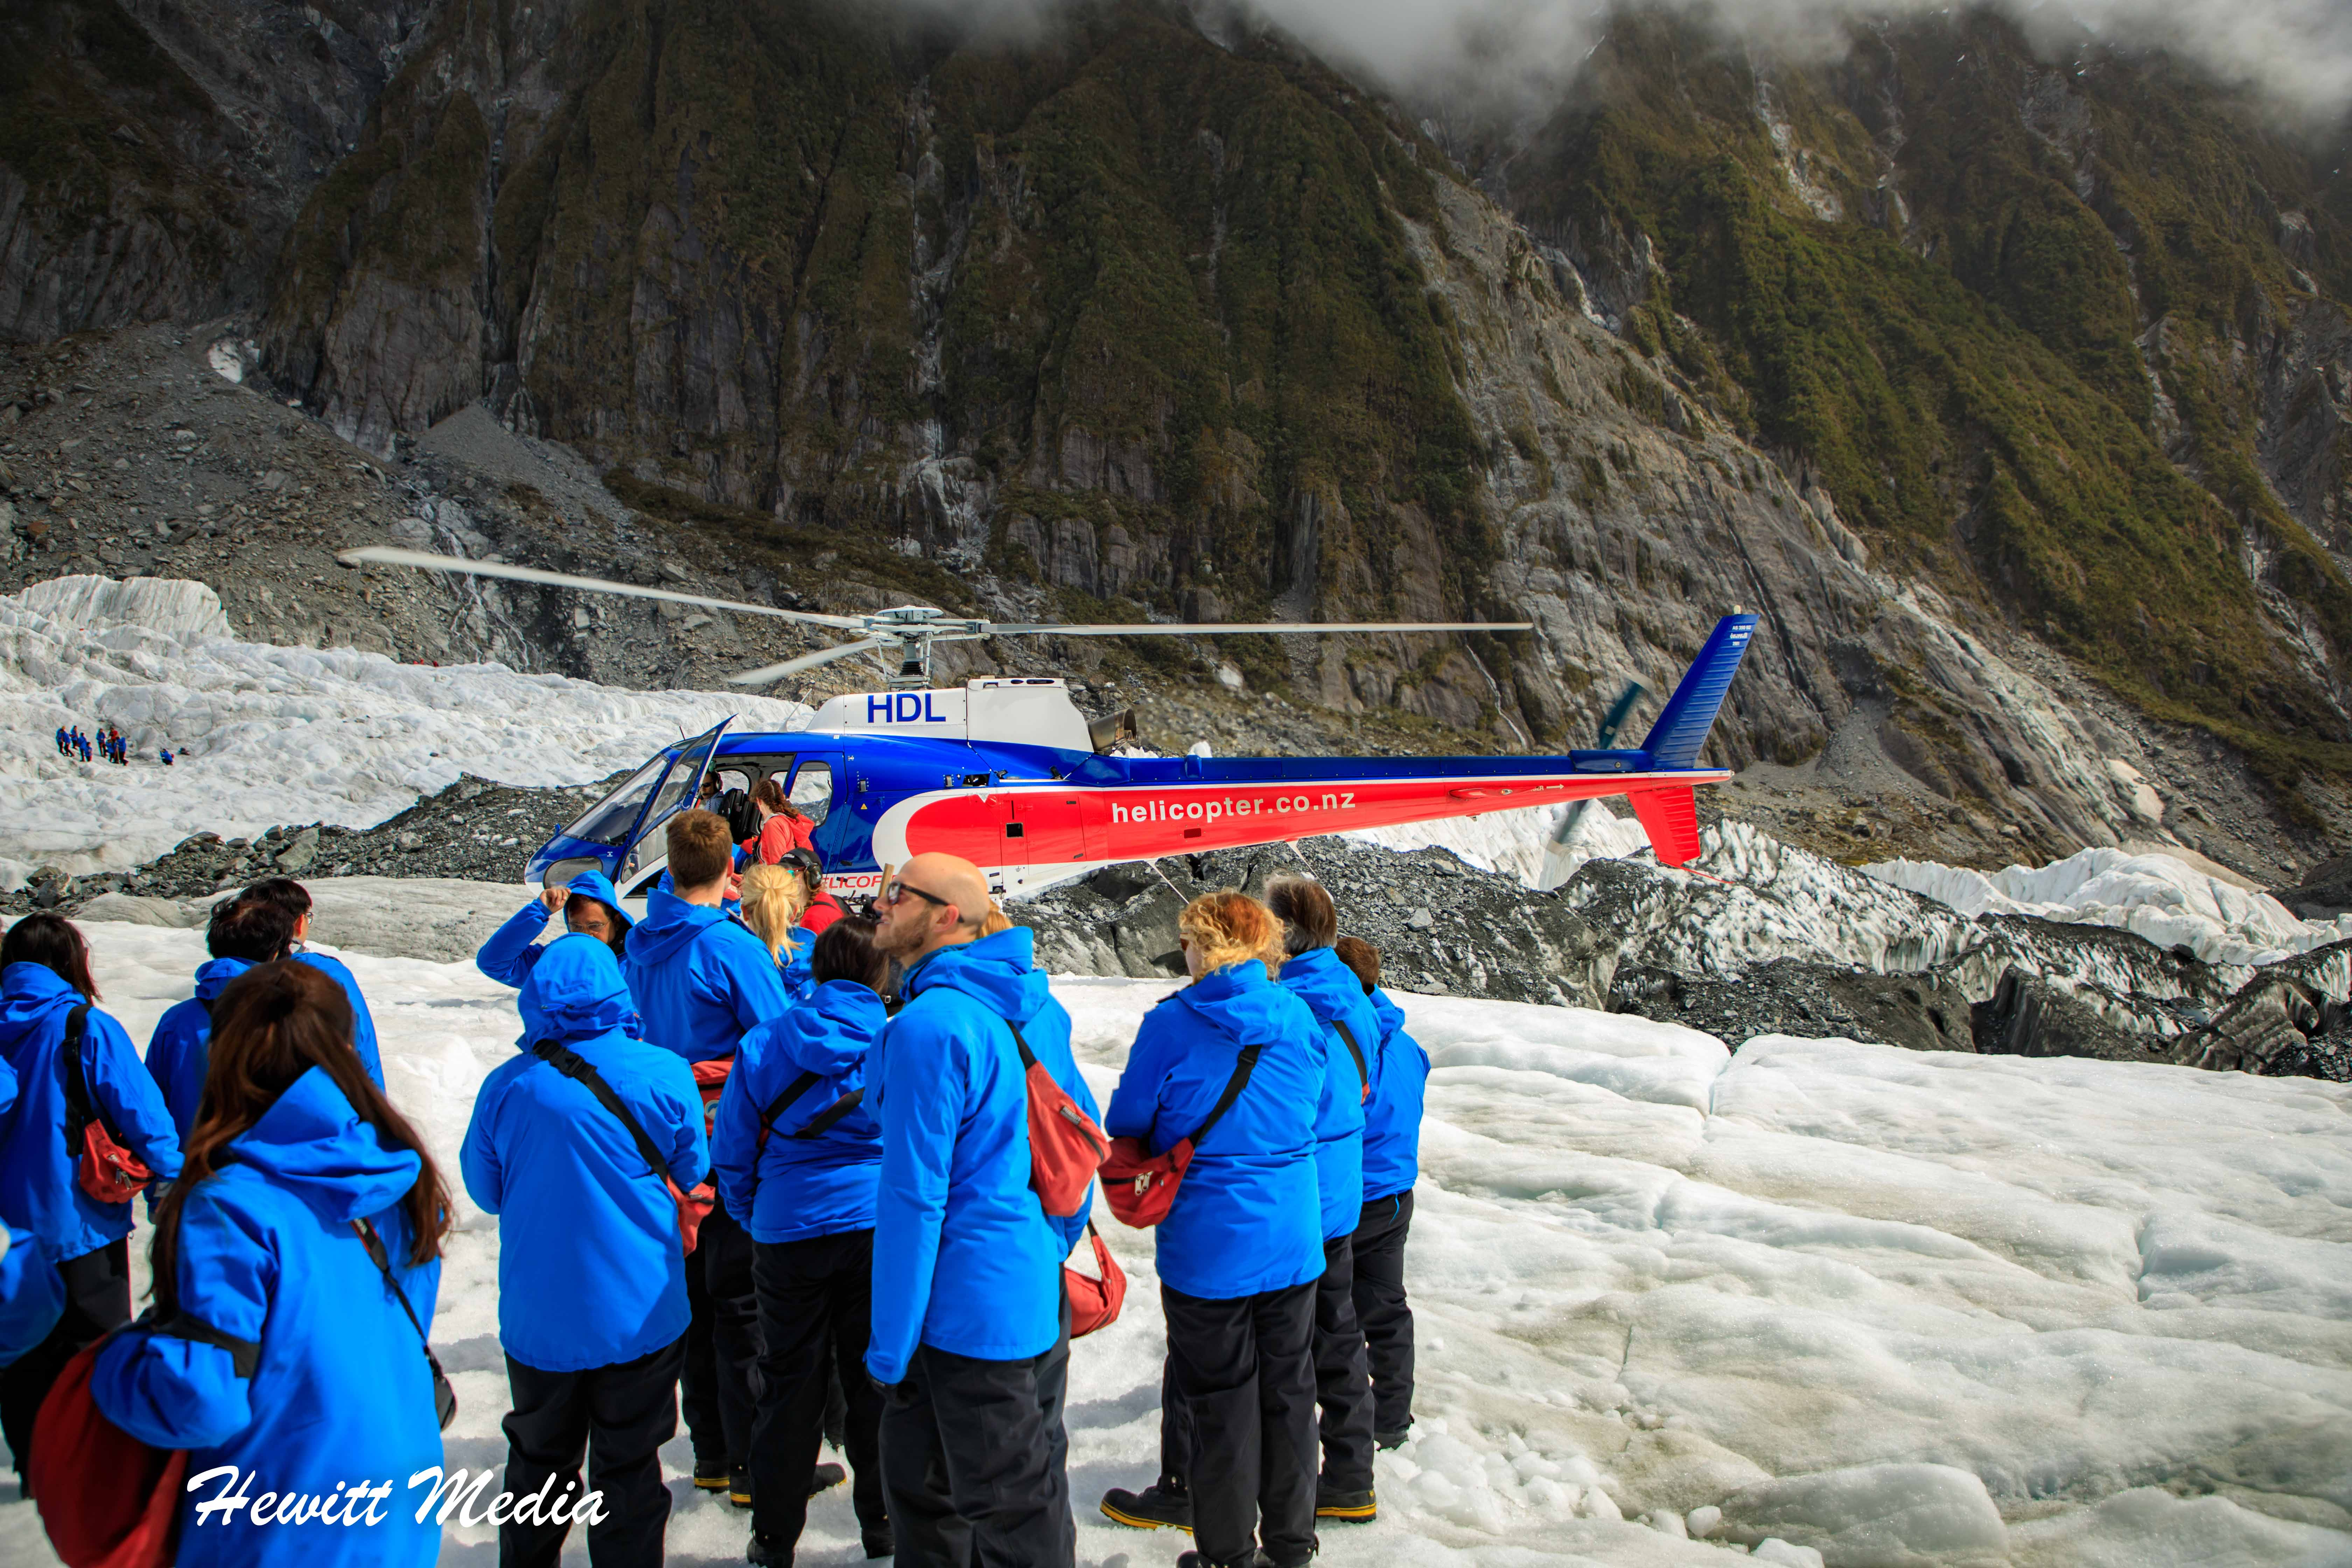 Just landed on Franz Josef Glacier